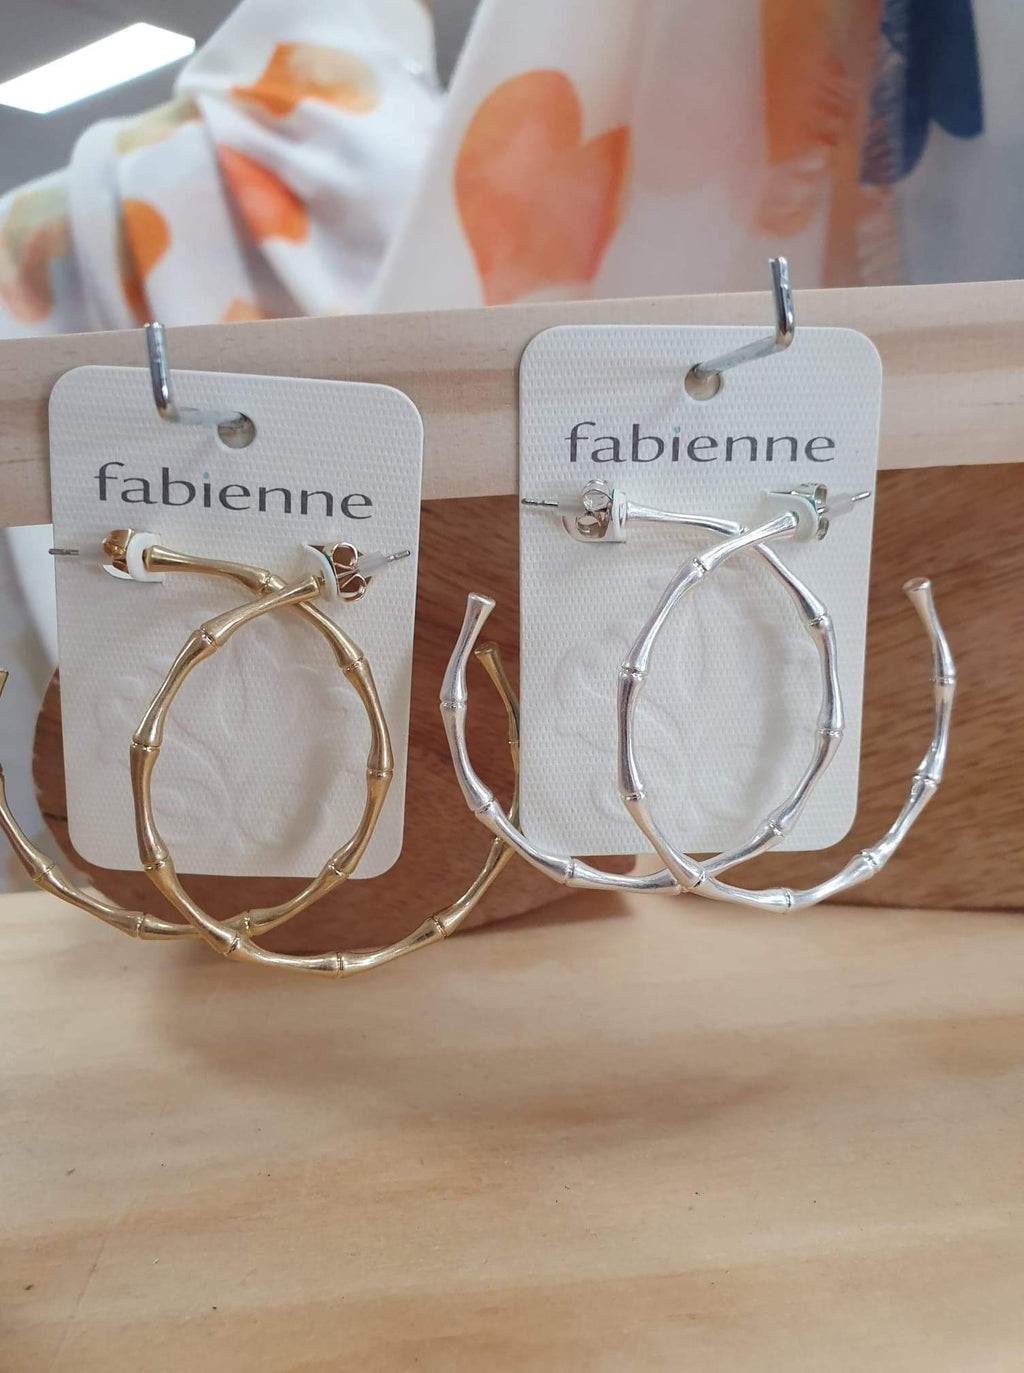 Fabienne Bamboo Look earrings